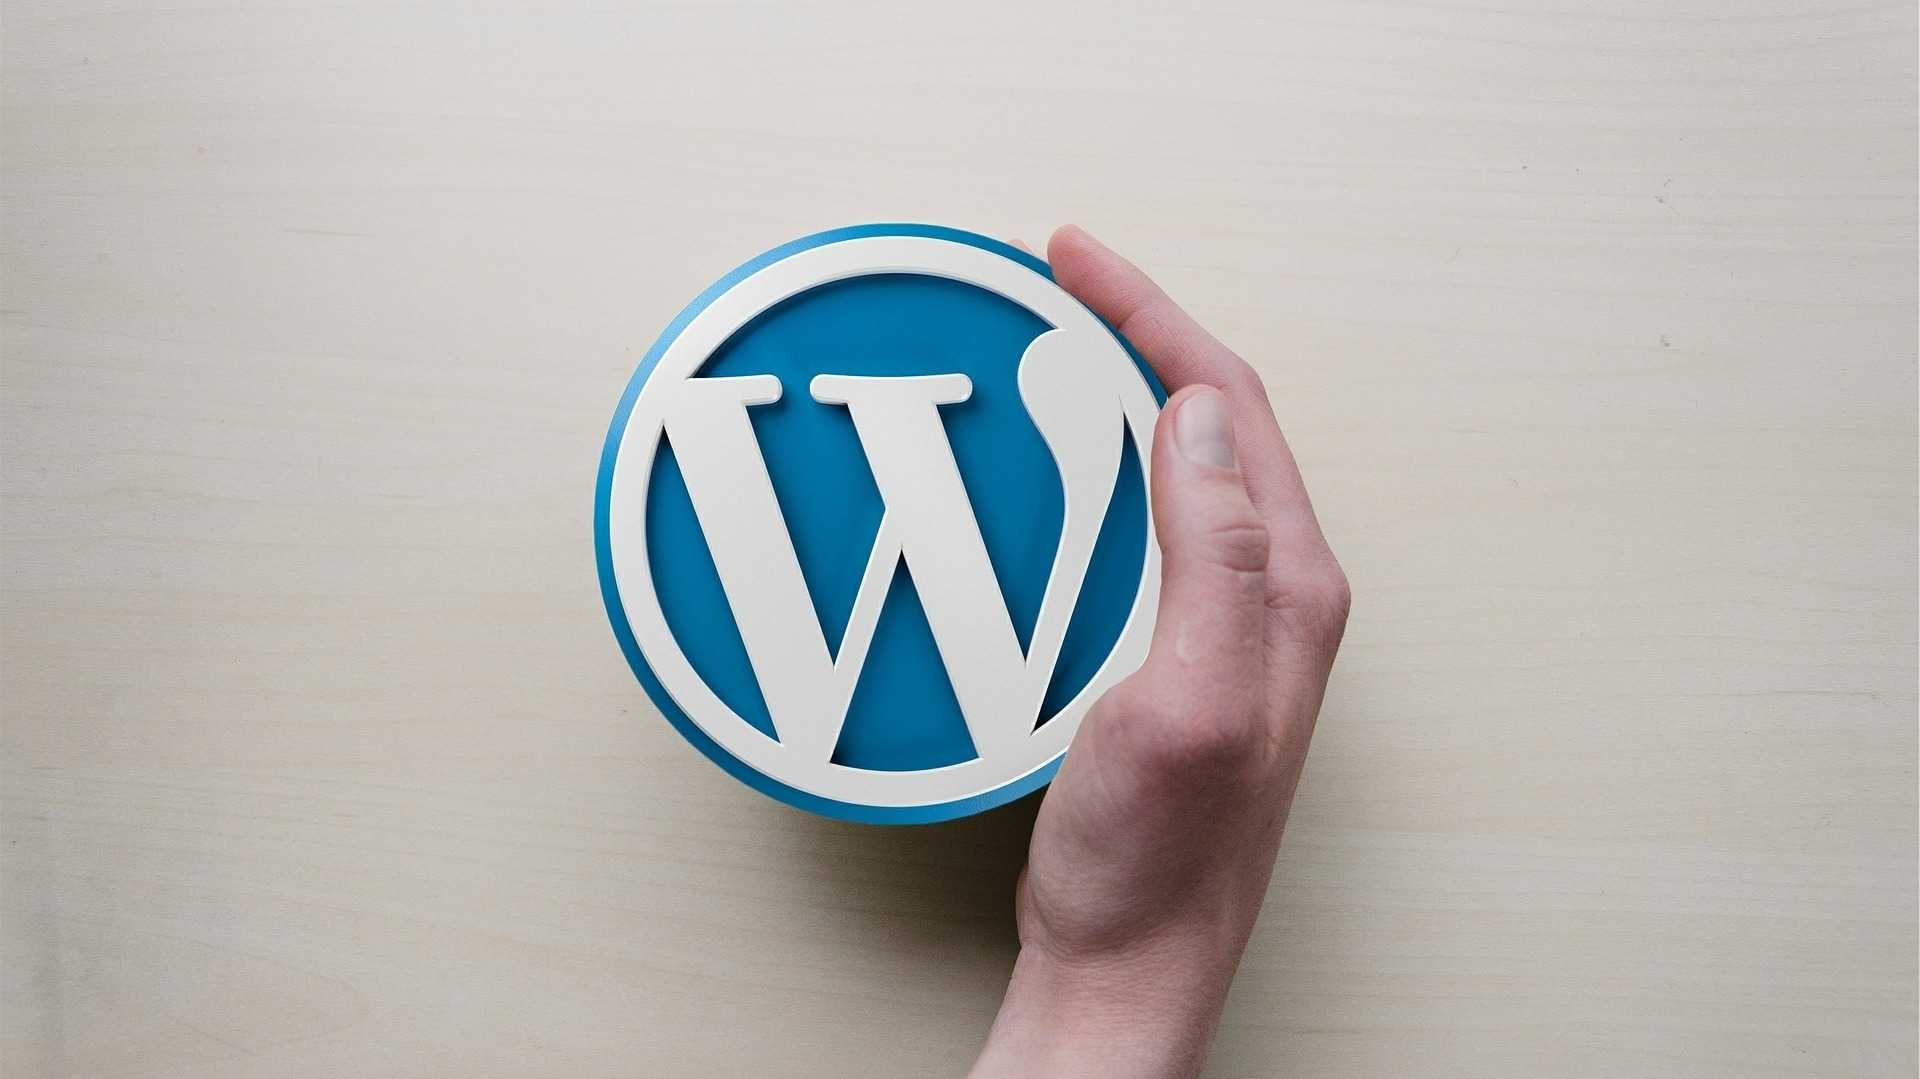 WordPress-Plug-in AMP for WP gefährdet Websites